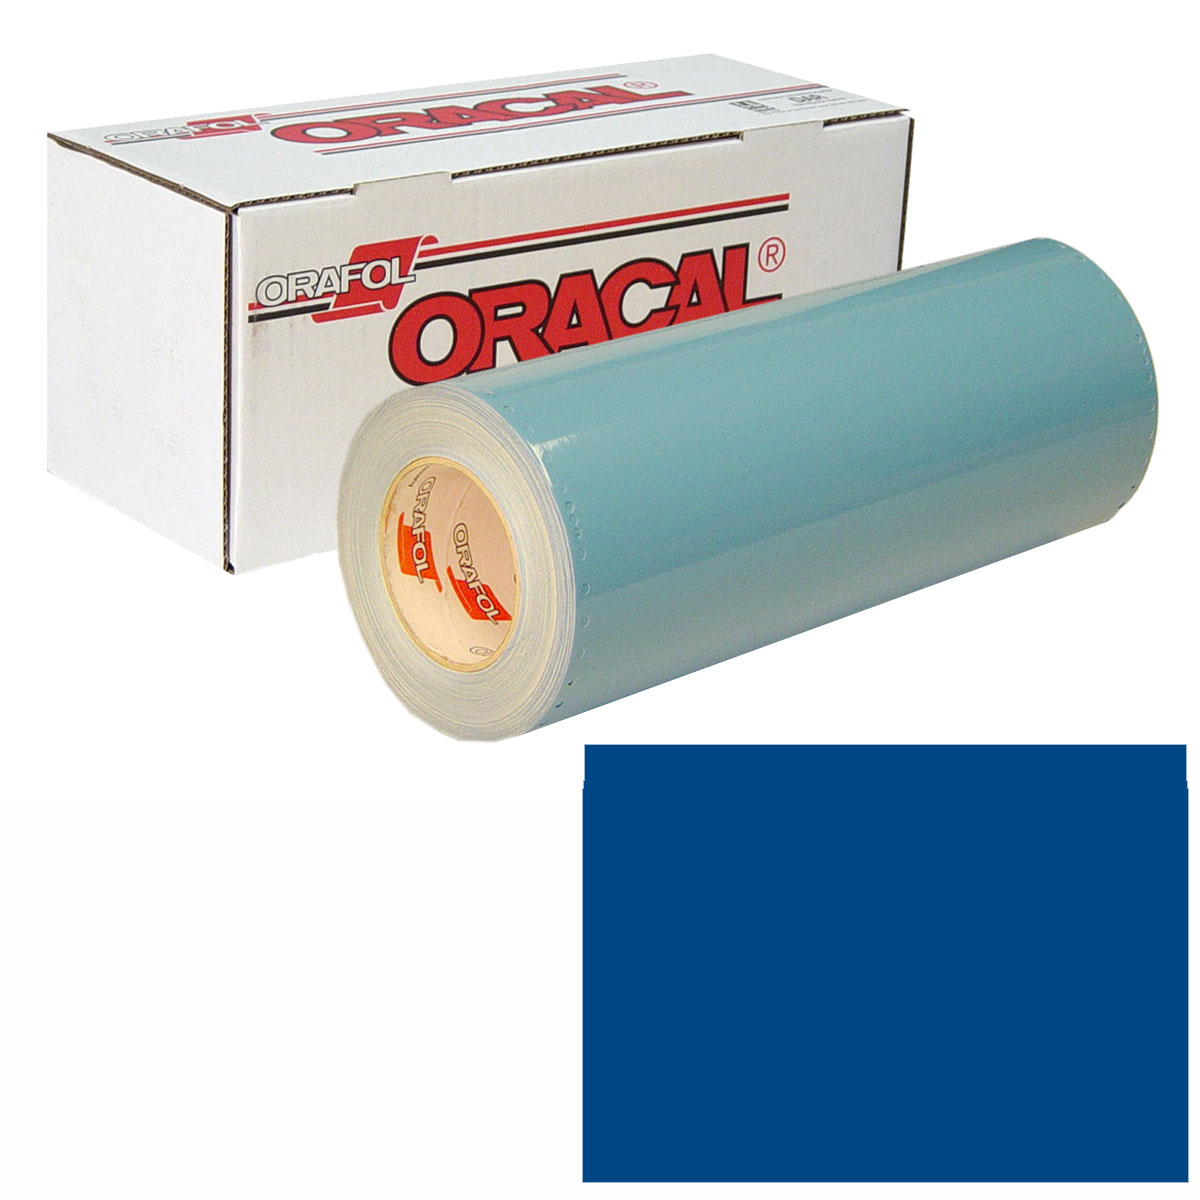 ORACAL 751 15In X 50Yd 067 Blue